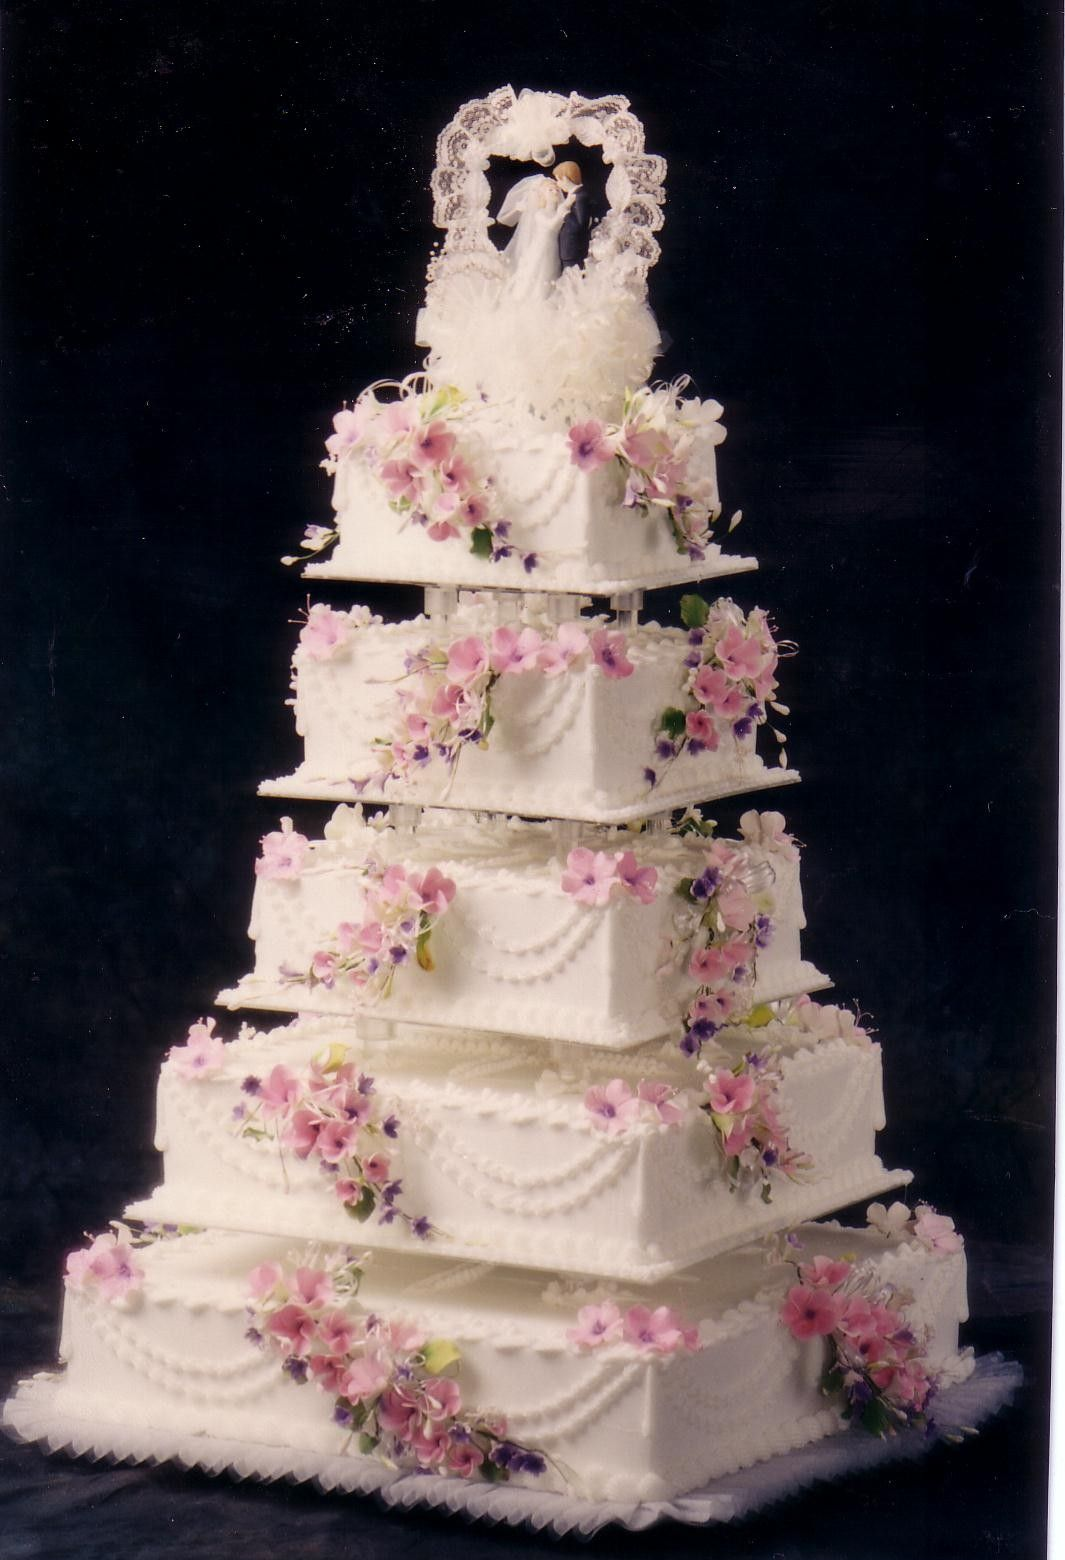 Tiered Wedding Cakes with Fountains